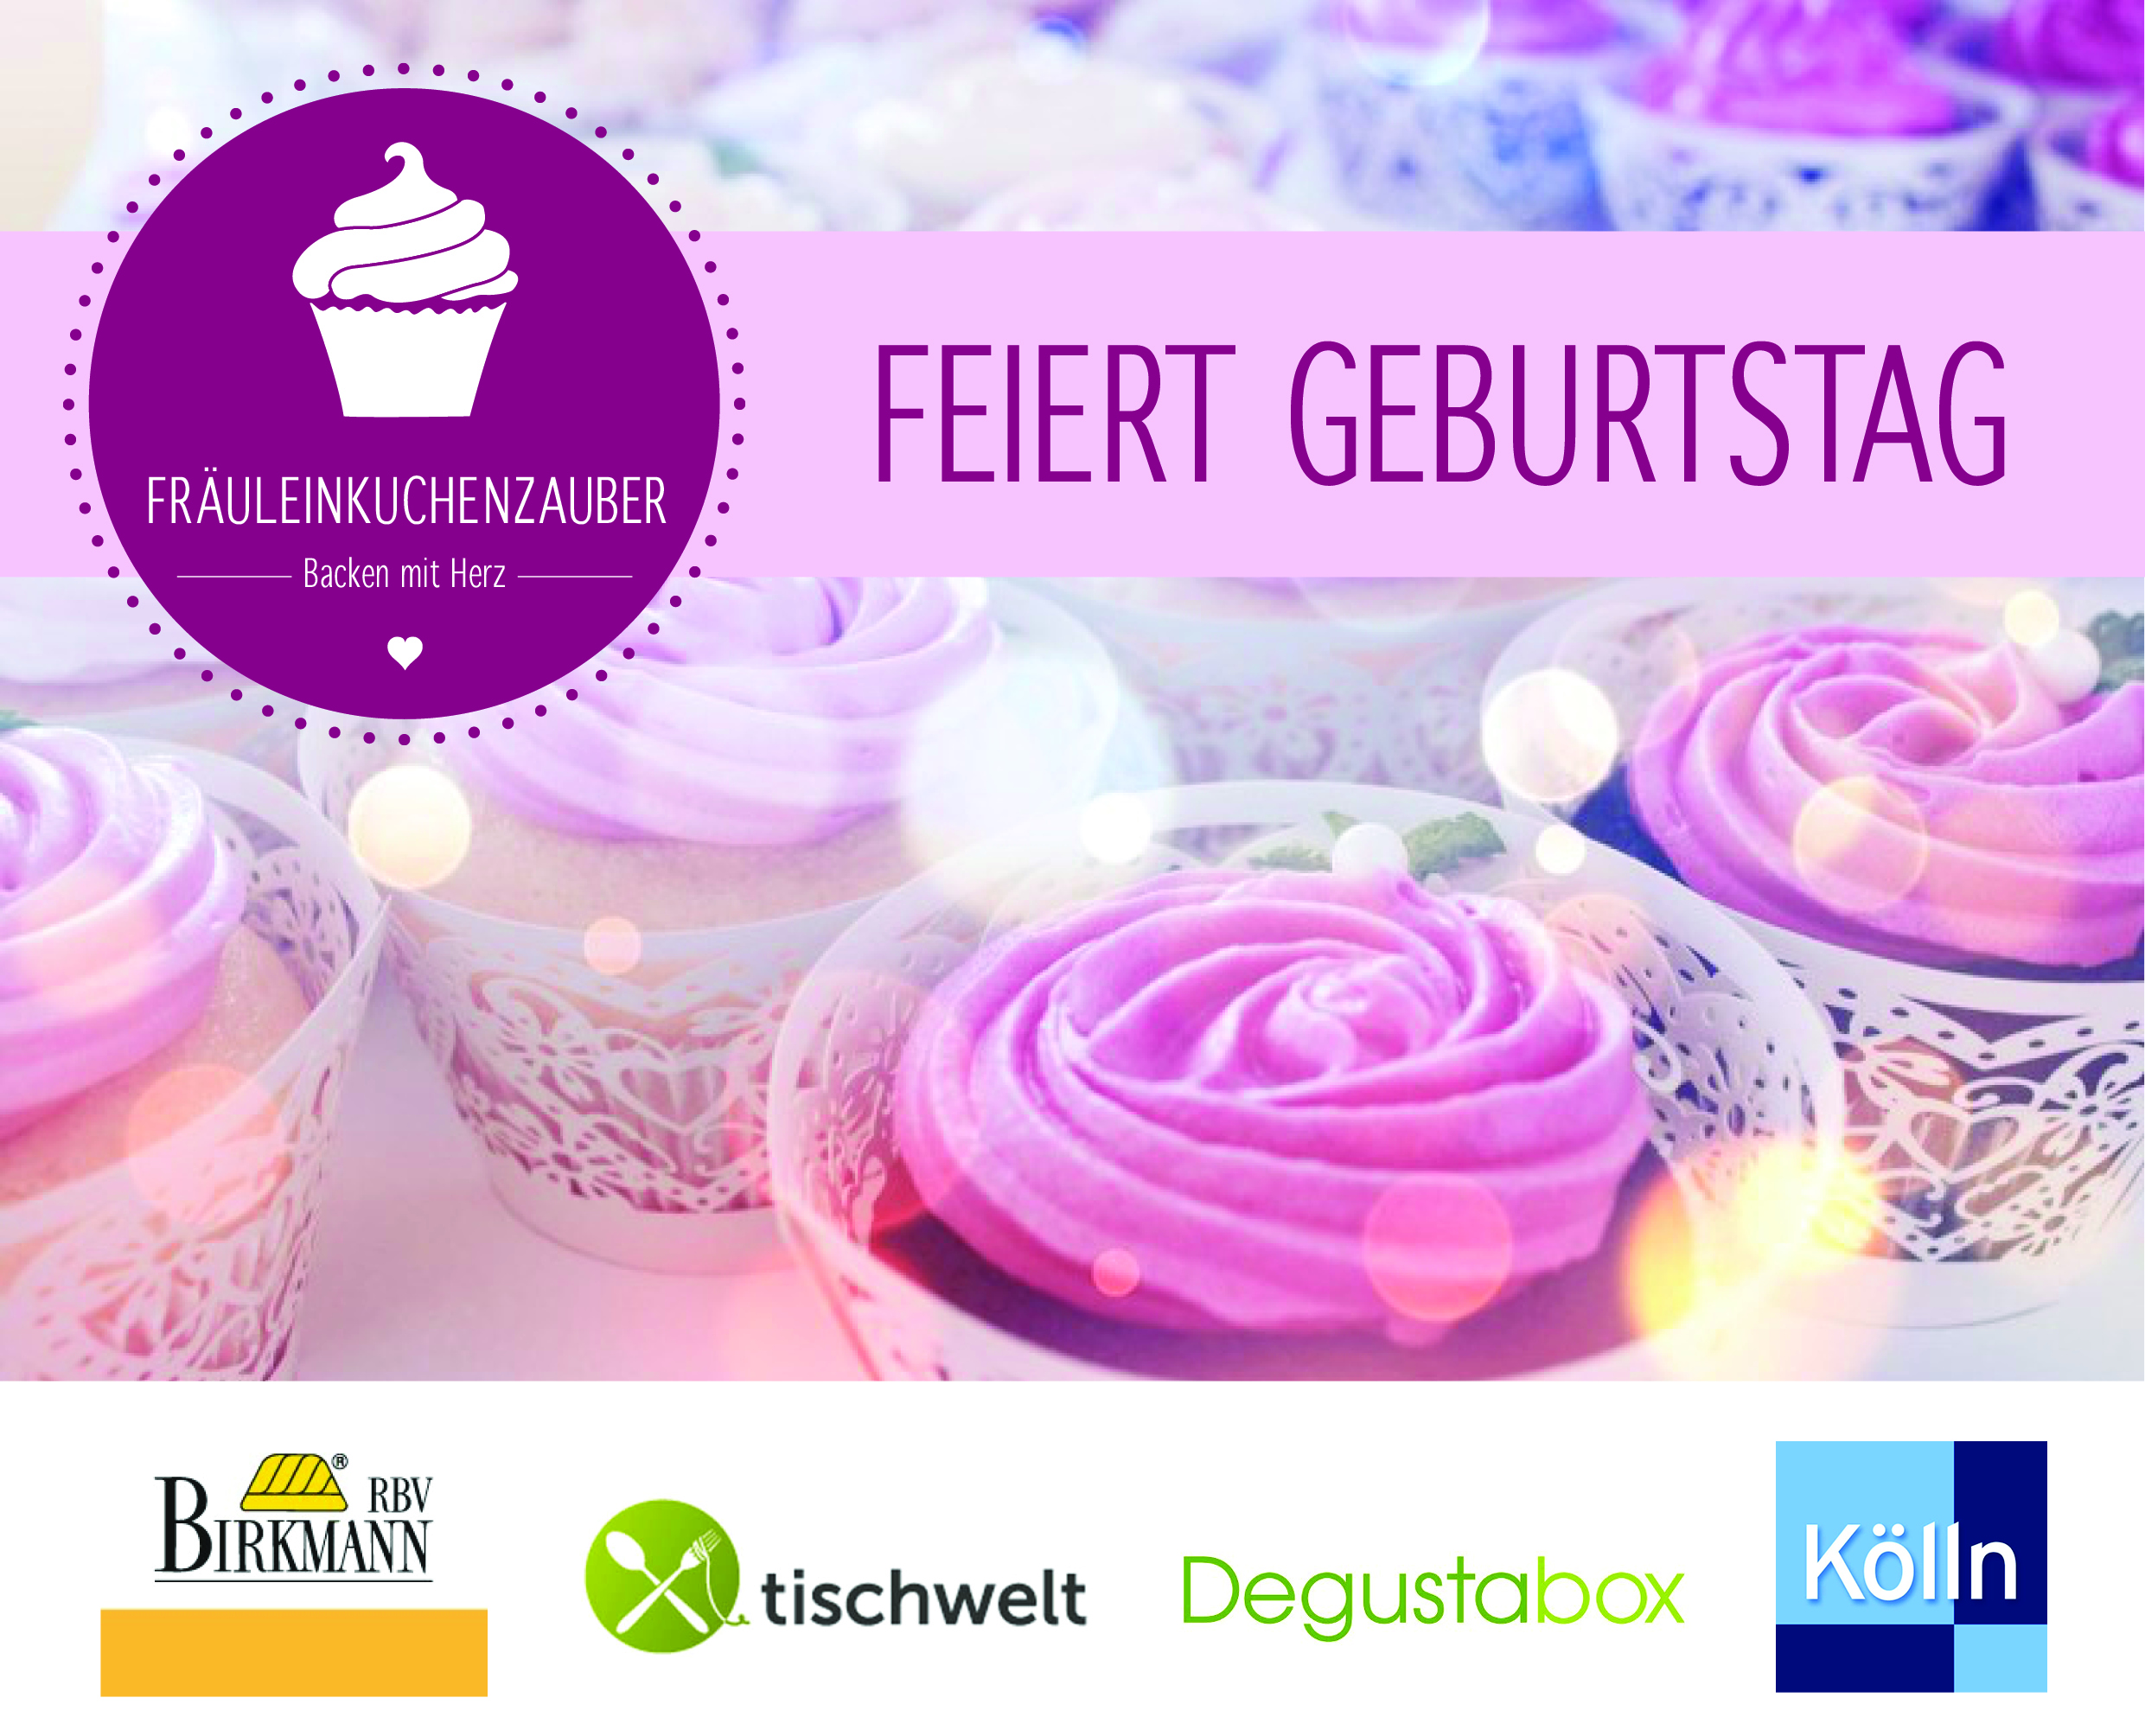 https://fraeuleinkuchenzauber.files.wordpress.com/2016/05/banner-facebook-geburtstag.jpg